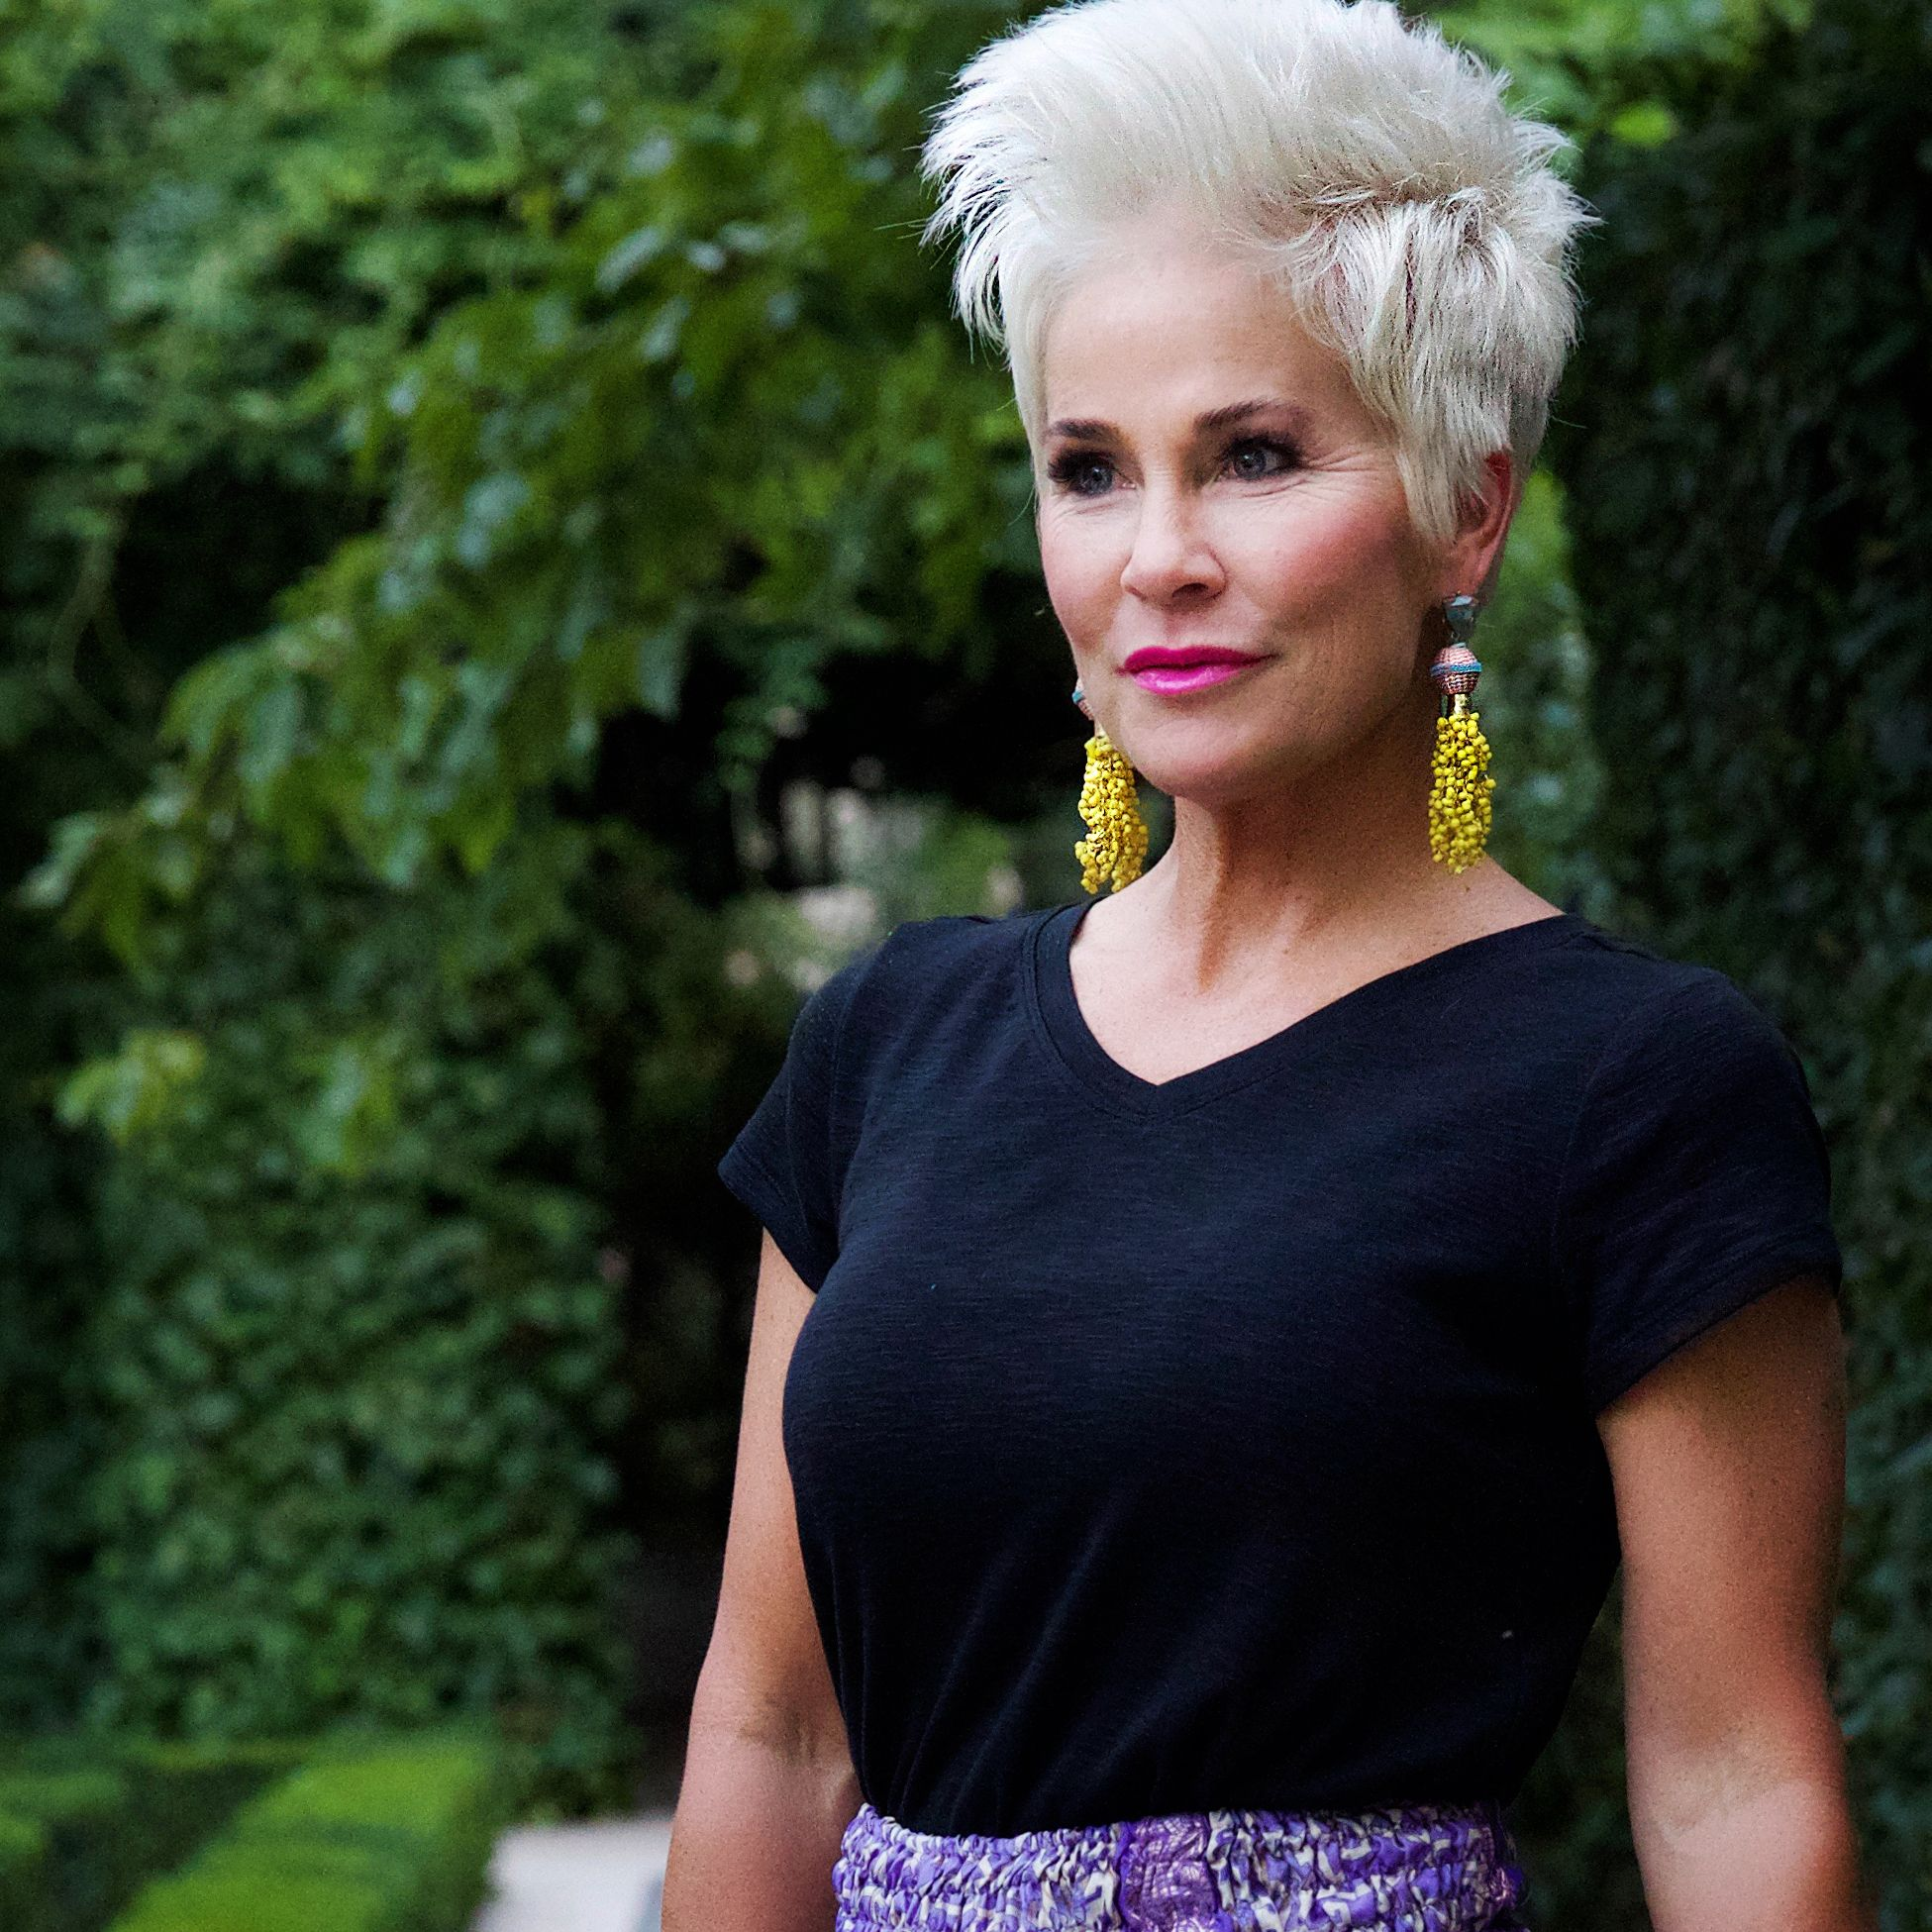 Hairstyles for women over 50 (avec images) Cheveux courts, C